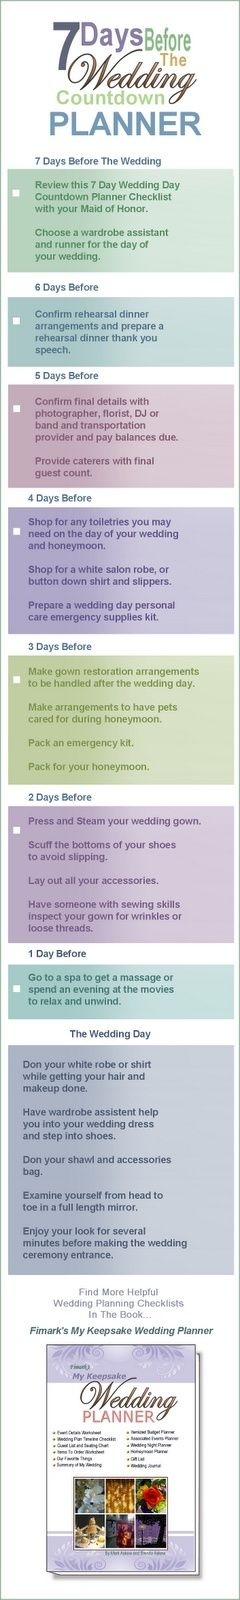 The ultimate countdown! For the week before your wedding!